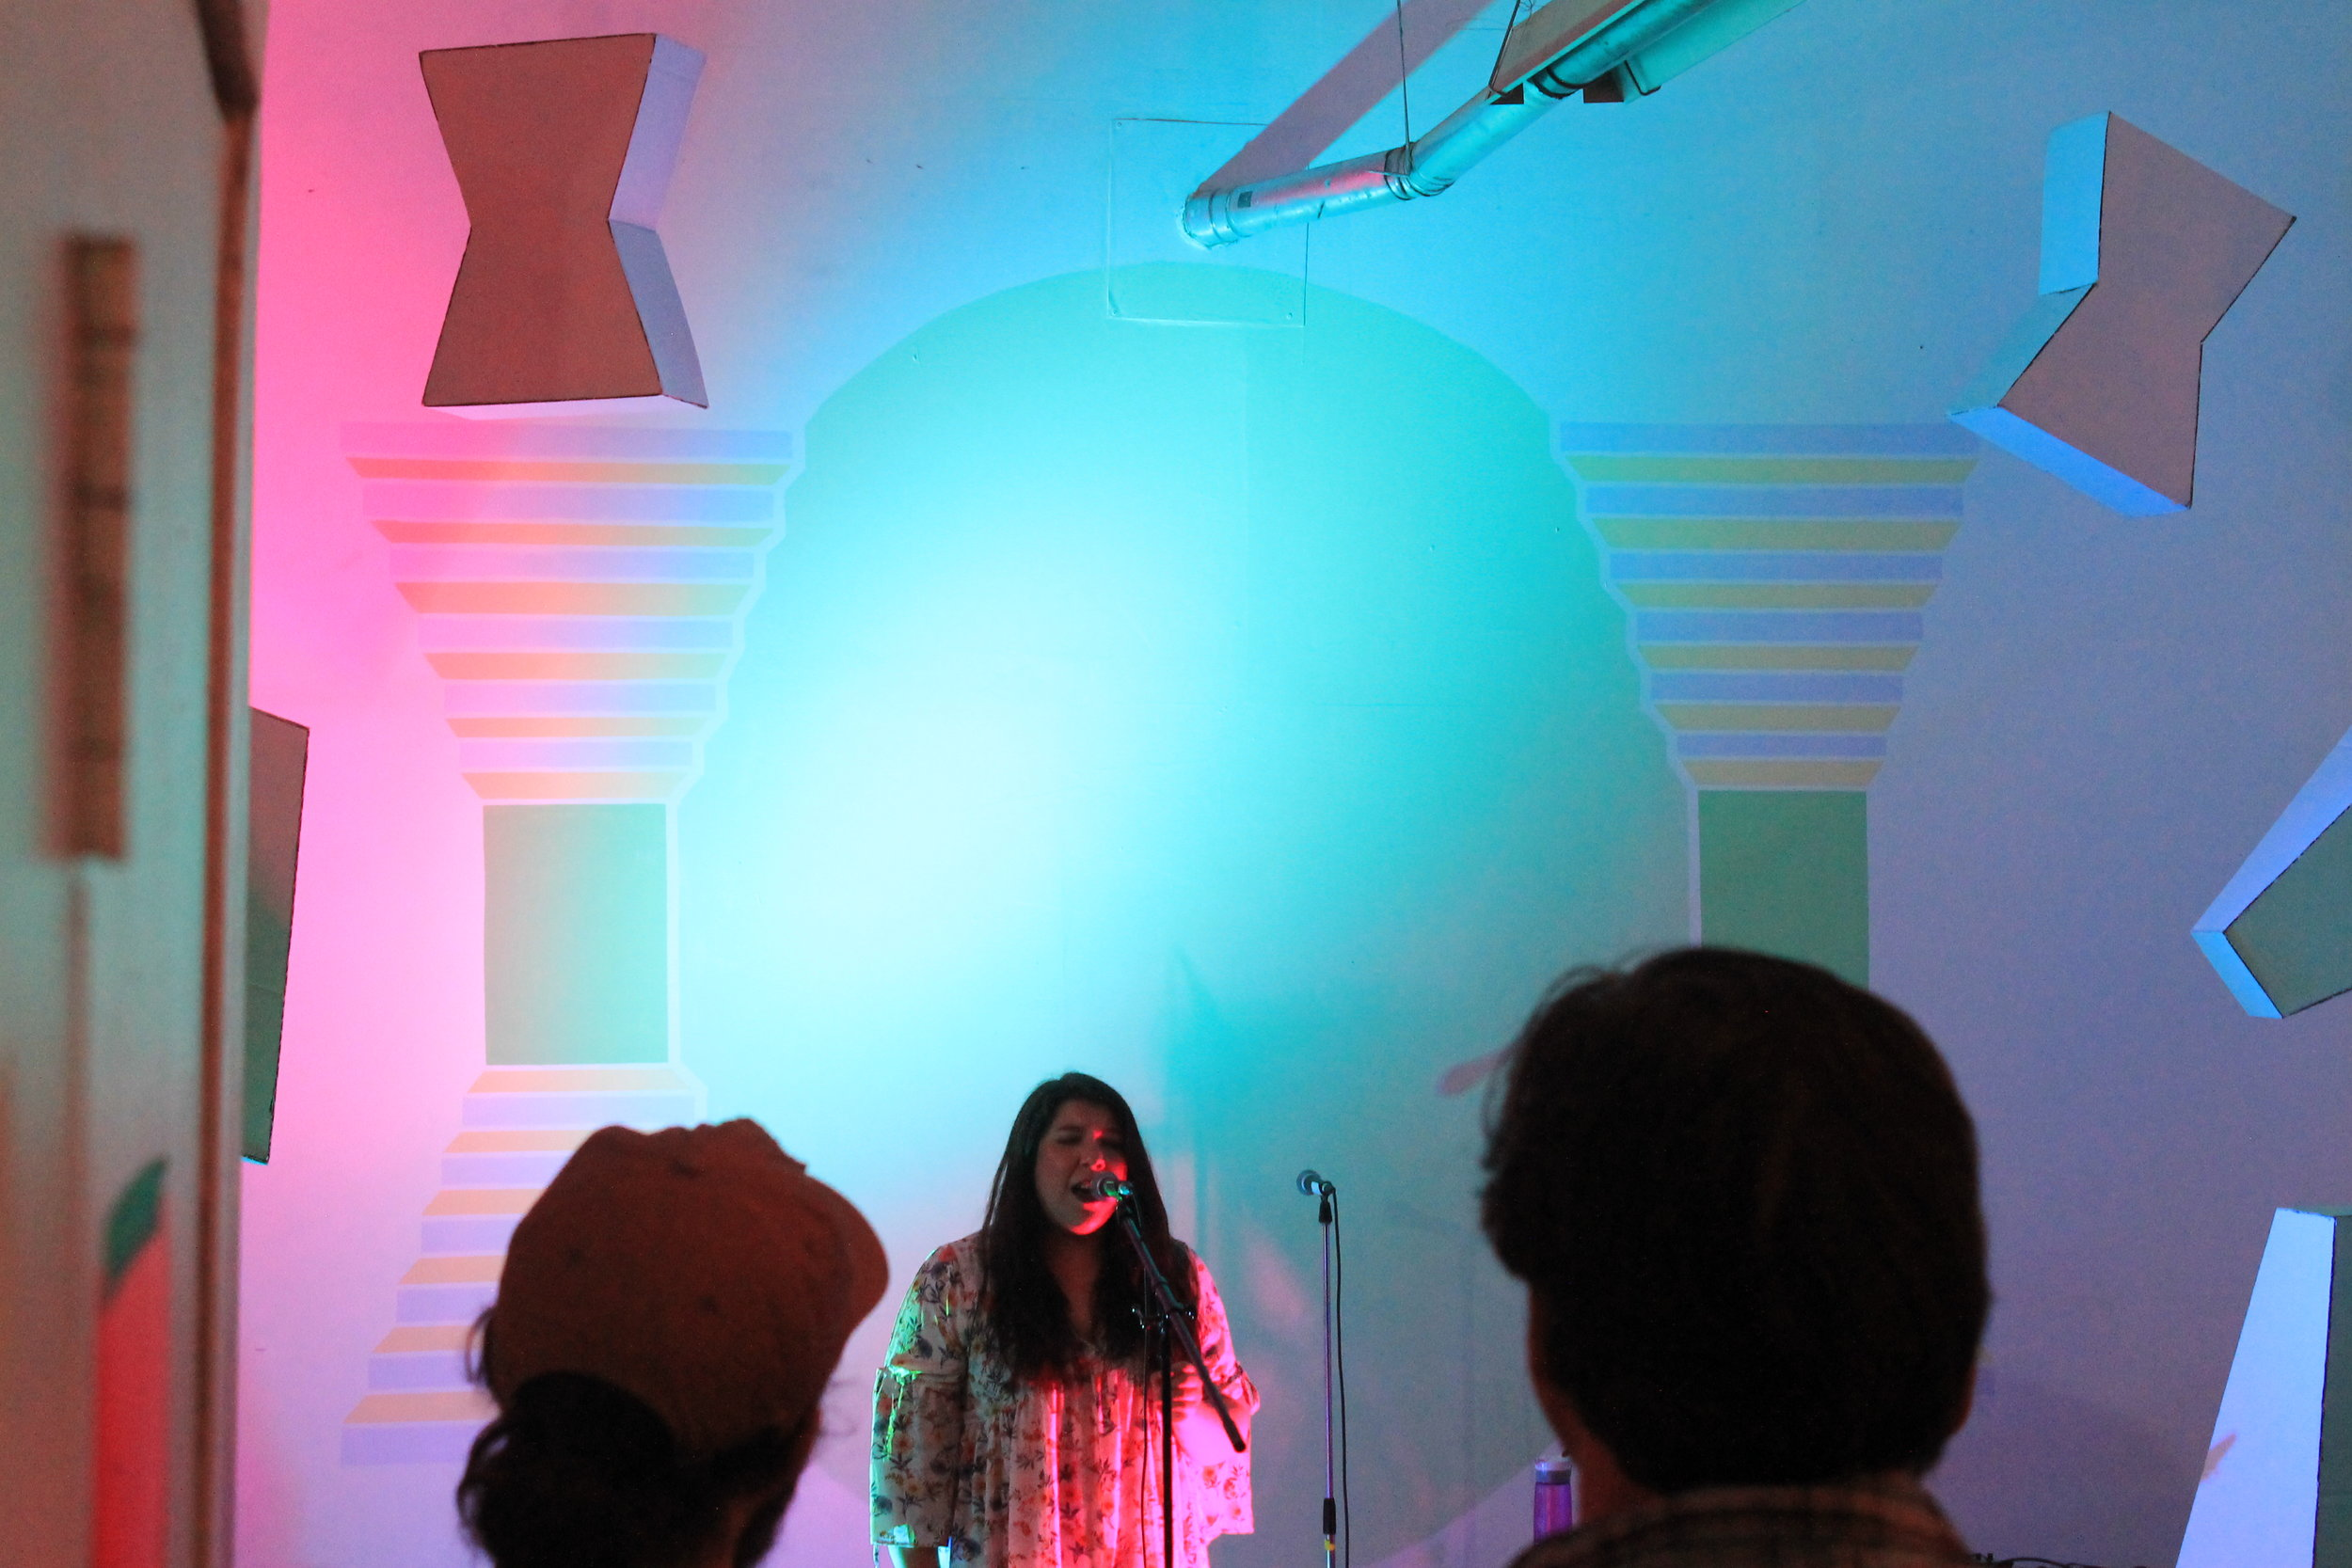 Larissa Desrosiers at DIY Spring Festival 2018 on May 5th 2018 at General Assembly. Photo by Sam Belleus.